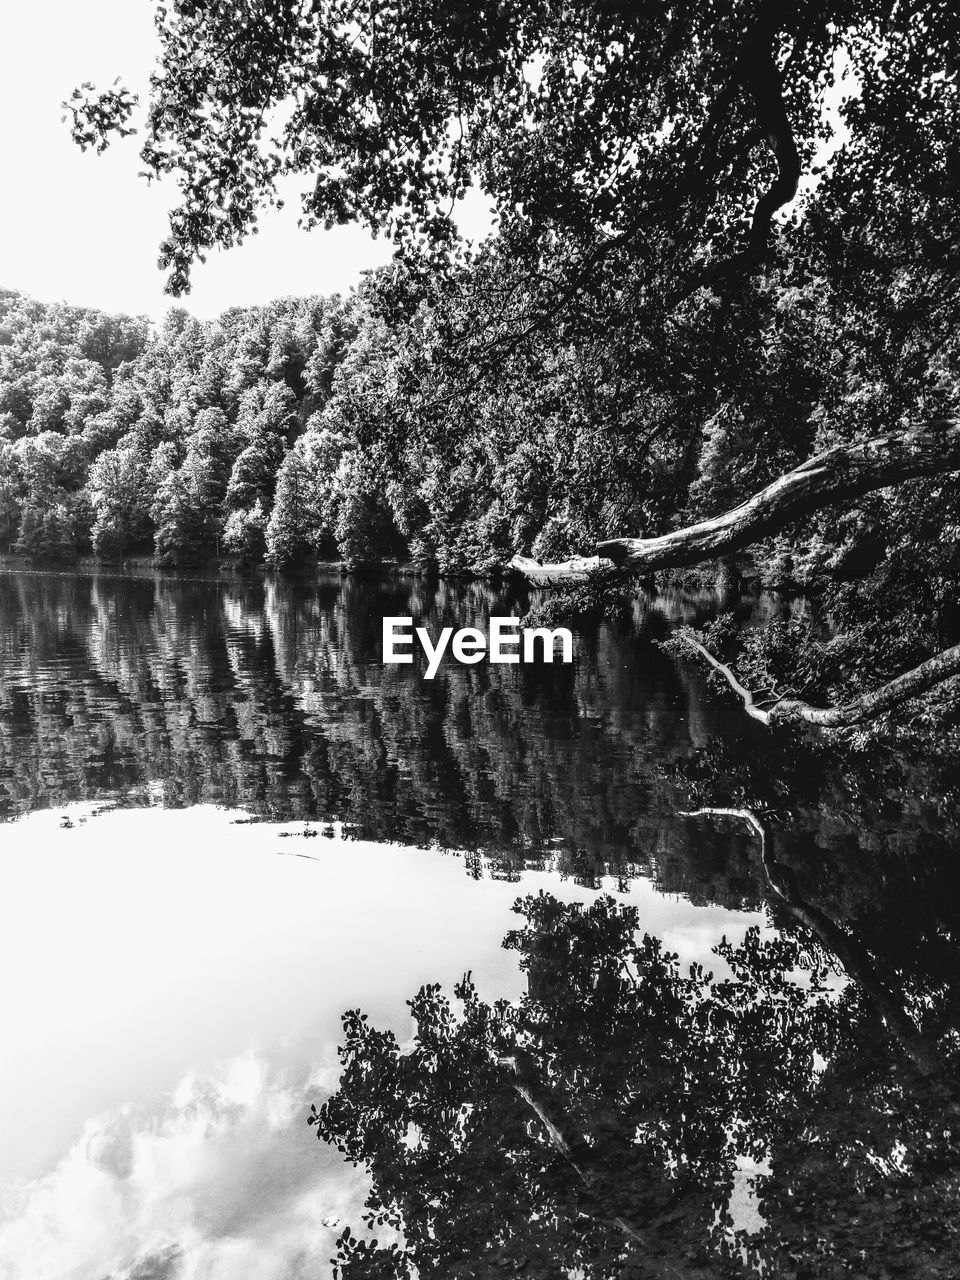 tree, plant, water, nature, tranquility, beauty in nature, lake, reflection, scenics - nature, day, sky, growth, tranquil scene, no people, forest, outdoors, land, non-urban scene